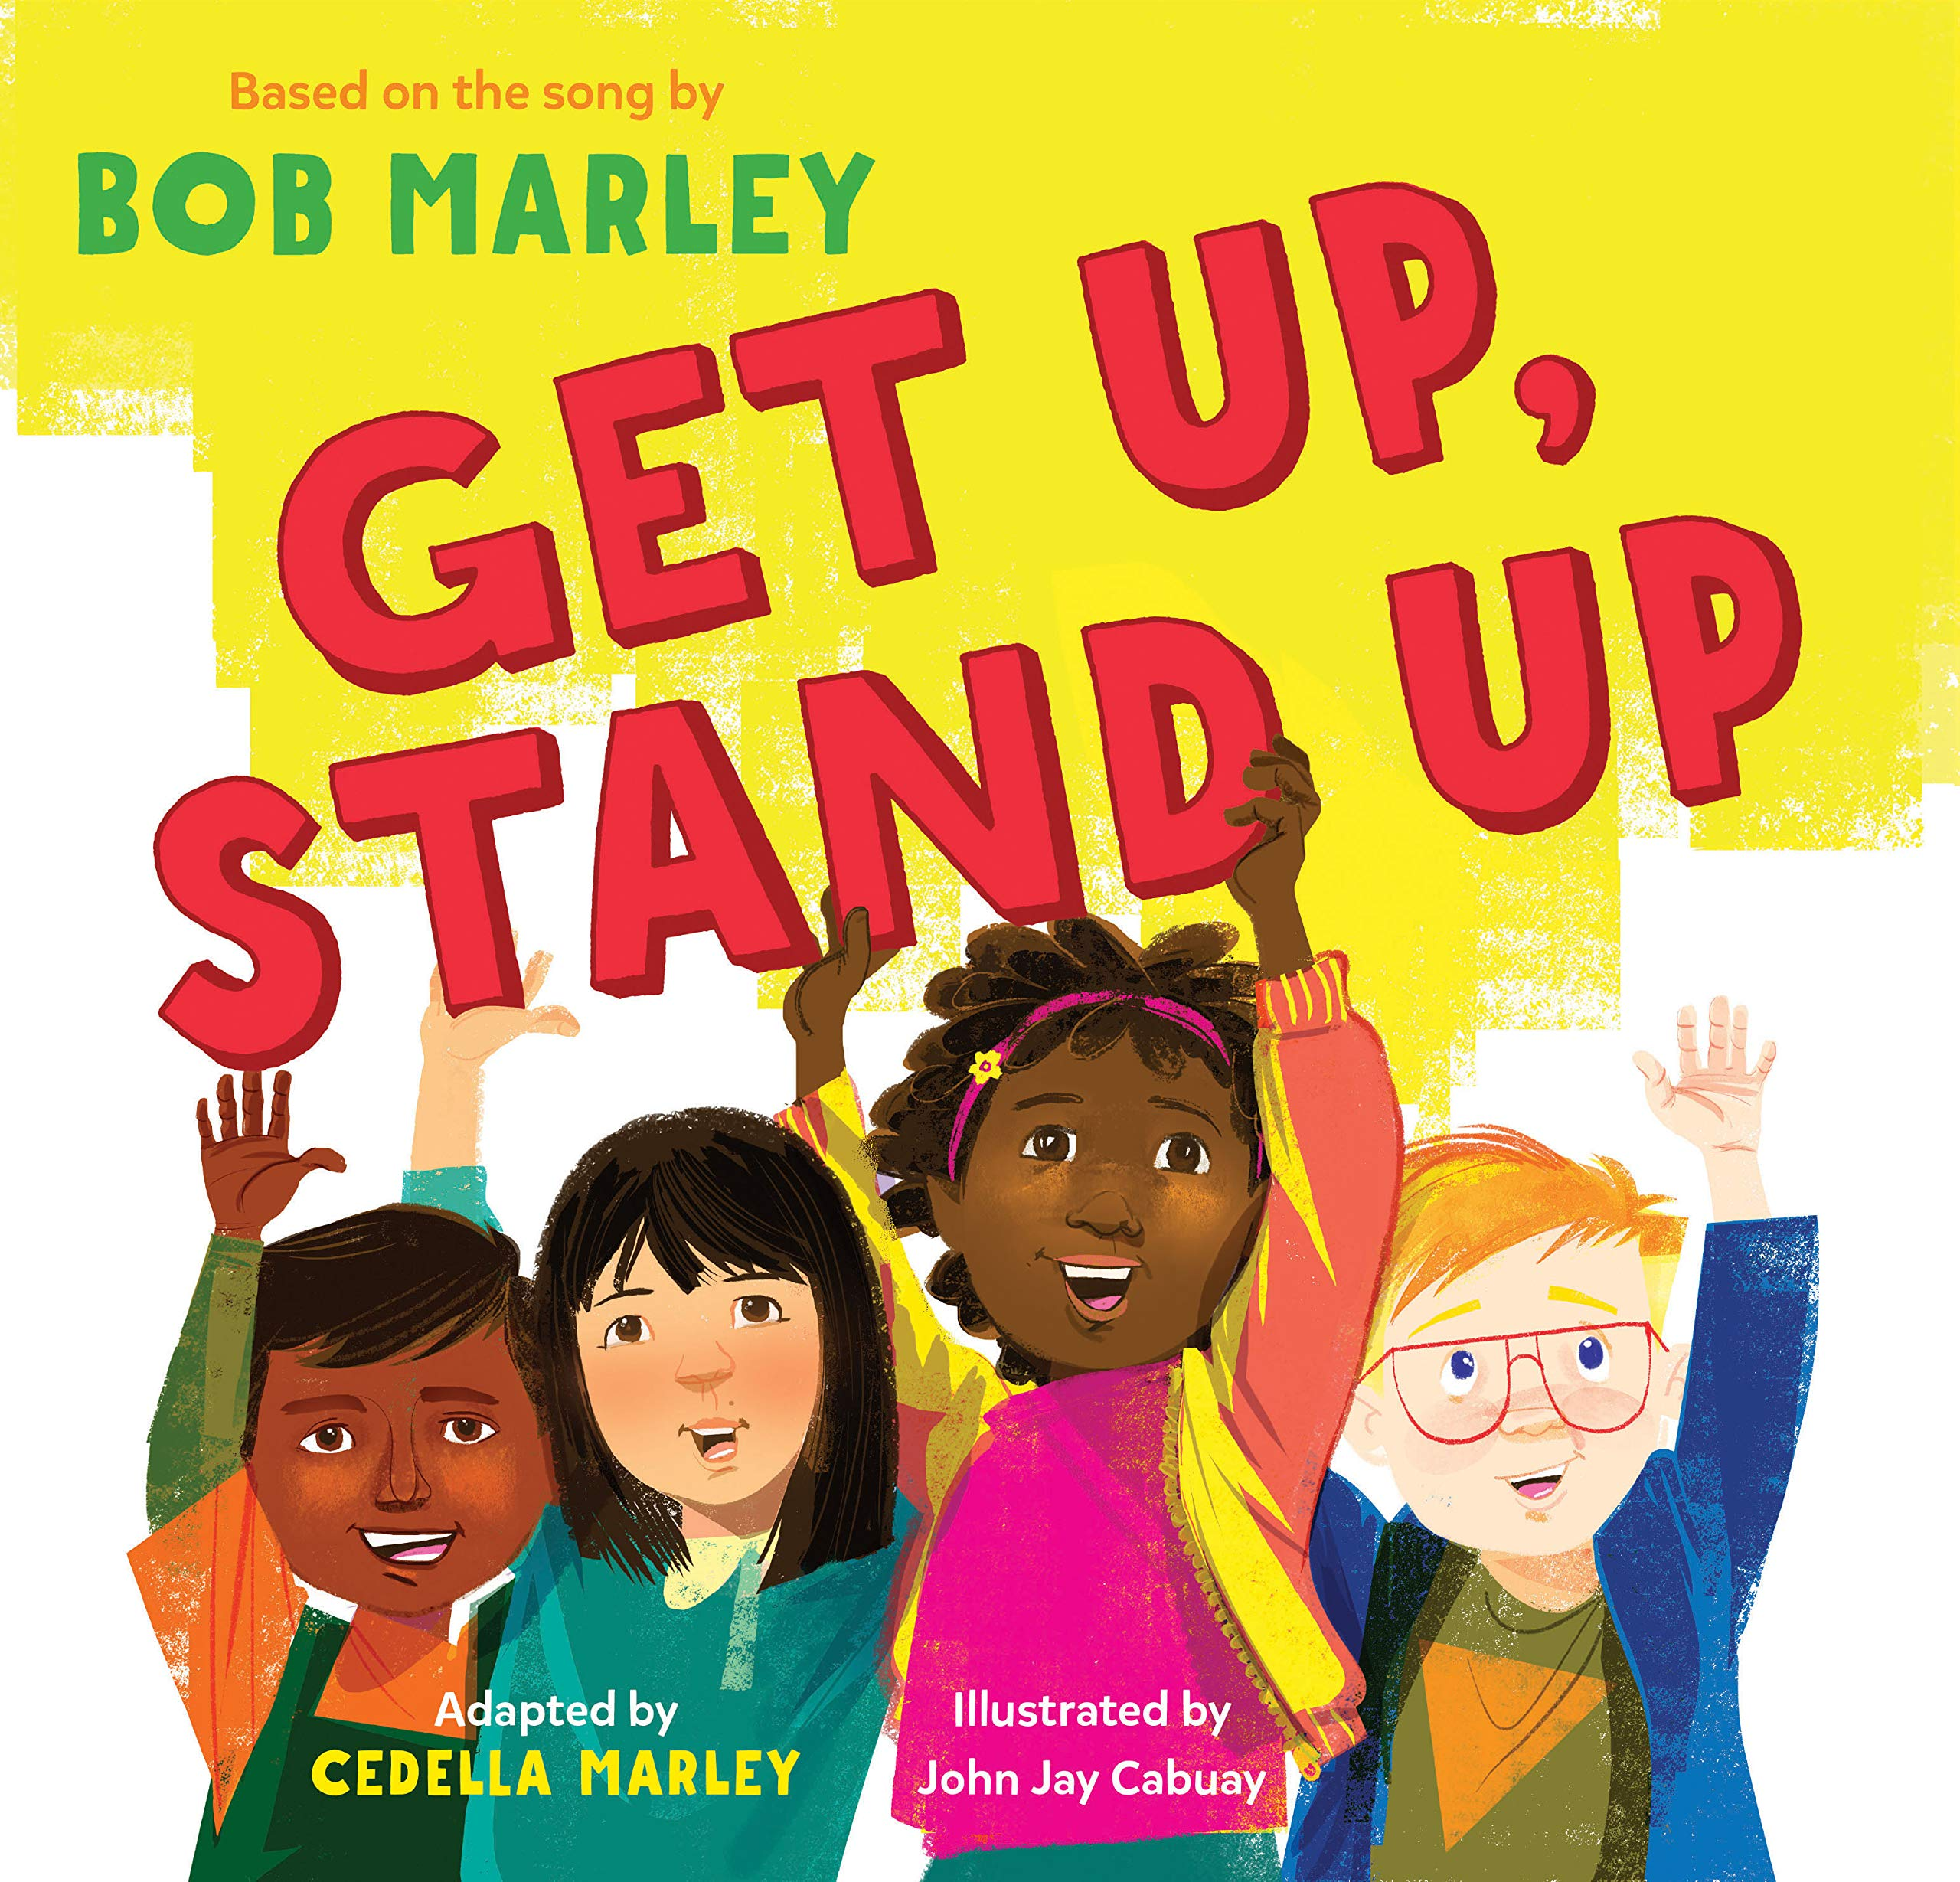 Get Up, Stand Up by Cedella Marley